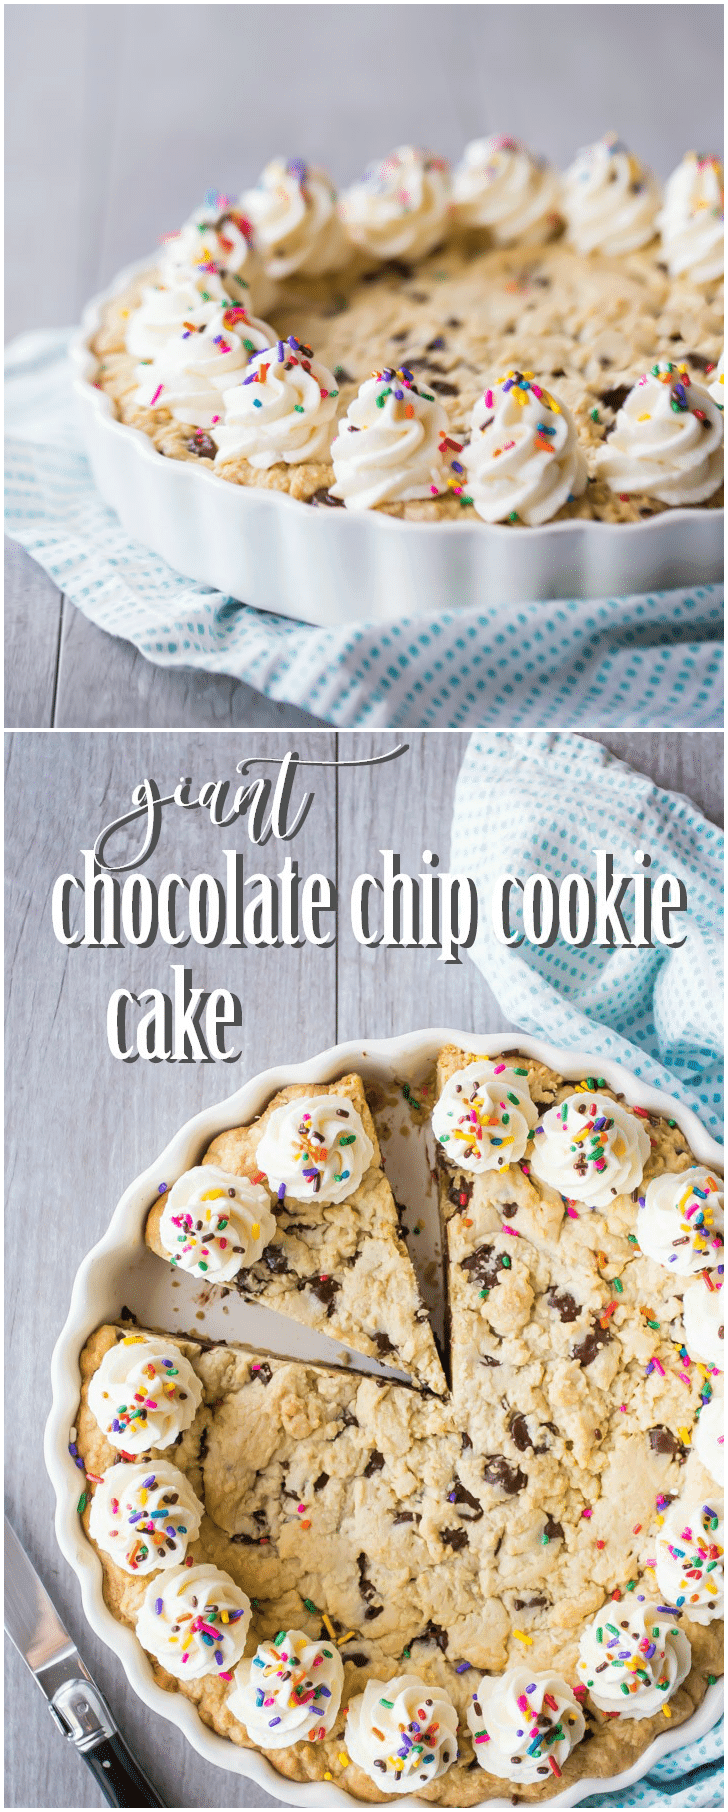 My family LOVES when I make this chocolate chip cookie cake! Everyone wants it for their birthday, it's so soft and gooey and chocolate-y! #chocolatechipcookiecake #chocolatechip #cookie #cake #easy #recipe #birthday #giant #decorated #homemade #best #icing #frosting #chewy #tollhouse #skillet #pizza #big #soft #deepdish #simple #gooey #ultimate #deliciousfood